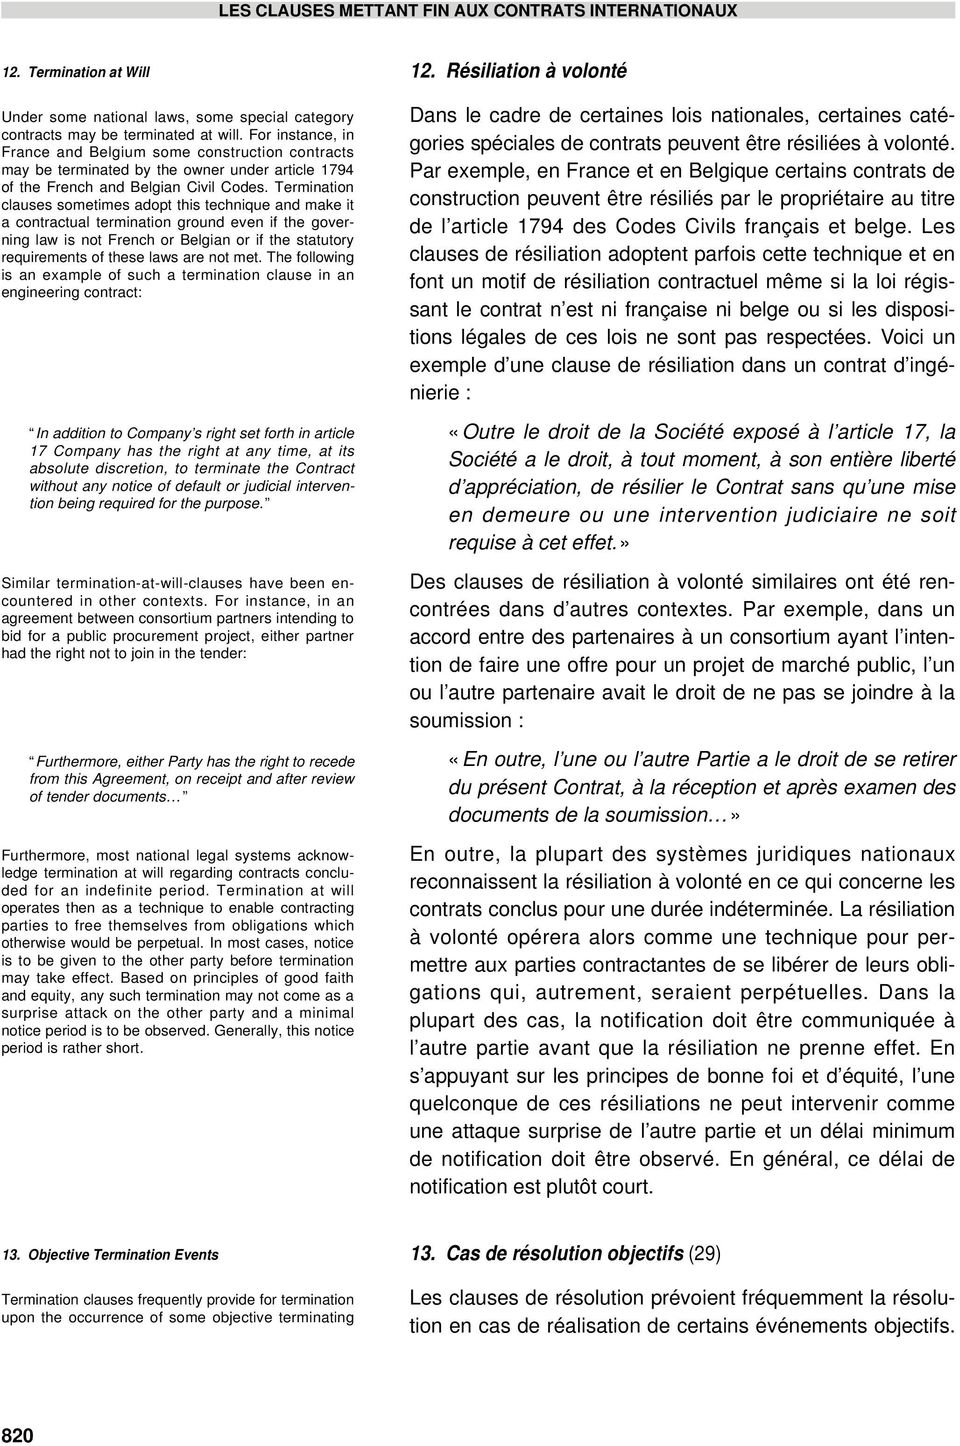 Termination clauses sometimes adopt this technique and make it a contractual termination grnd even if the governing law is not French Belgian if the statuty requirements of these laws are not met.